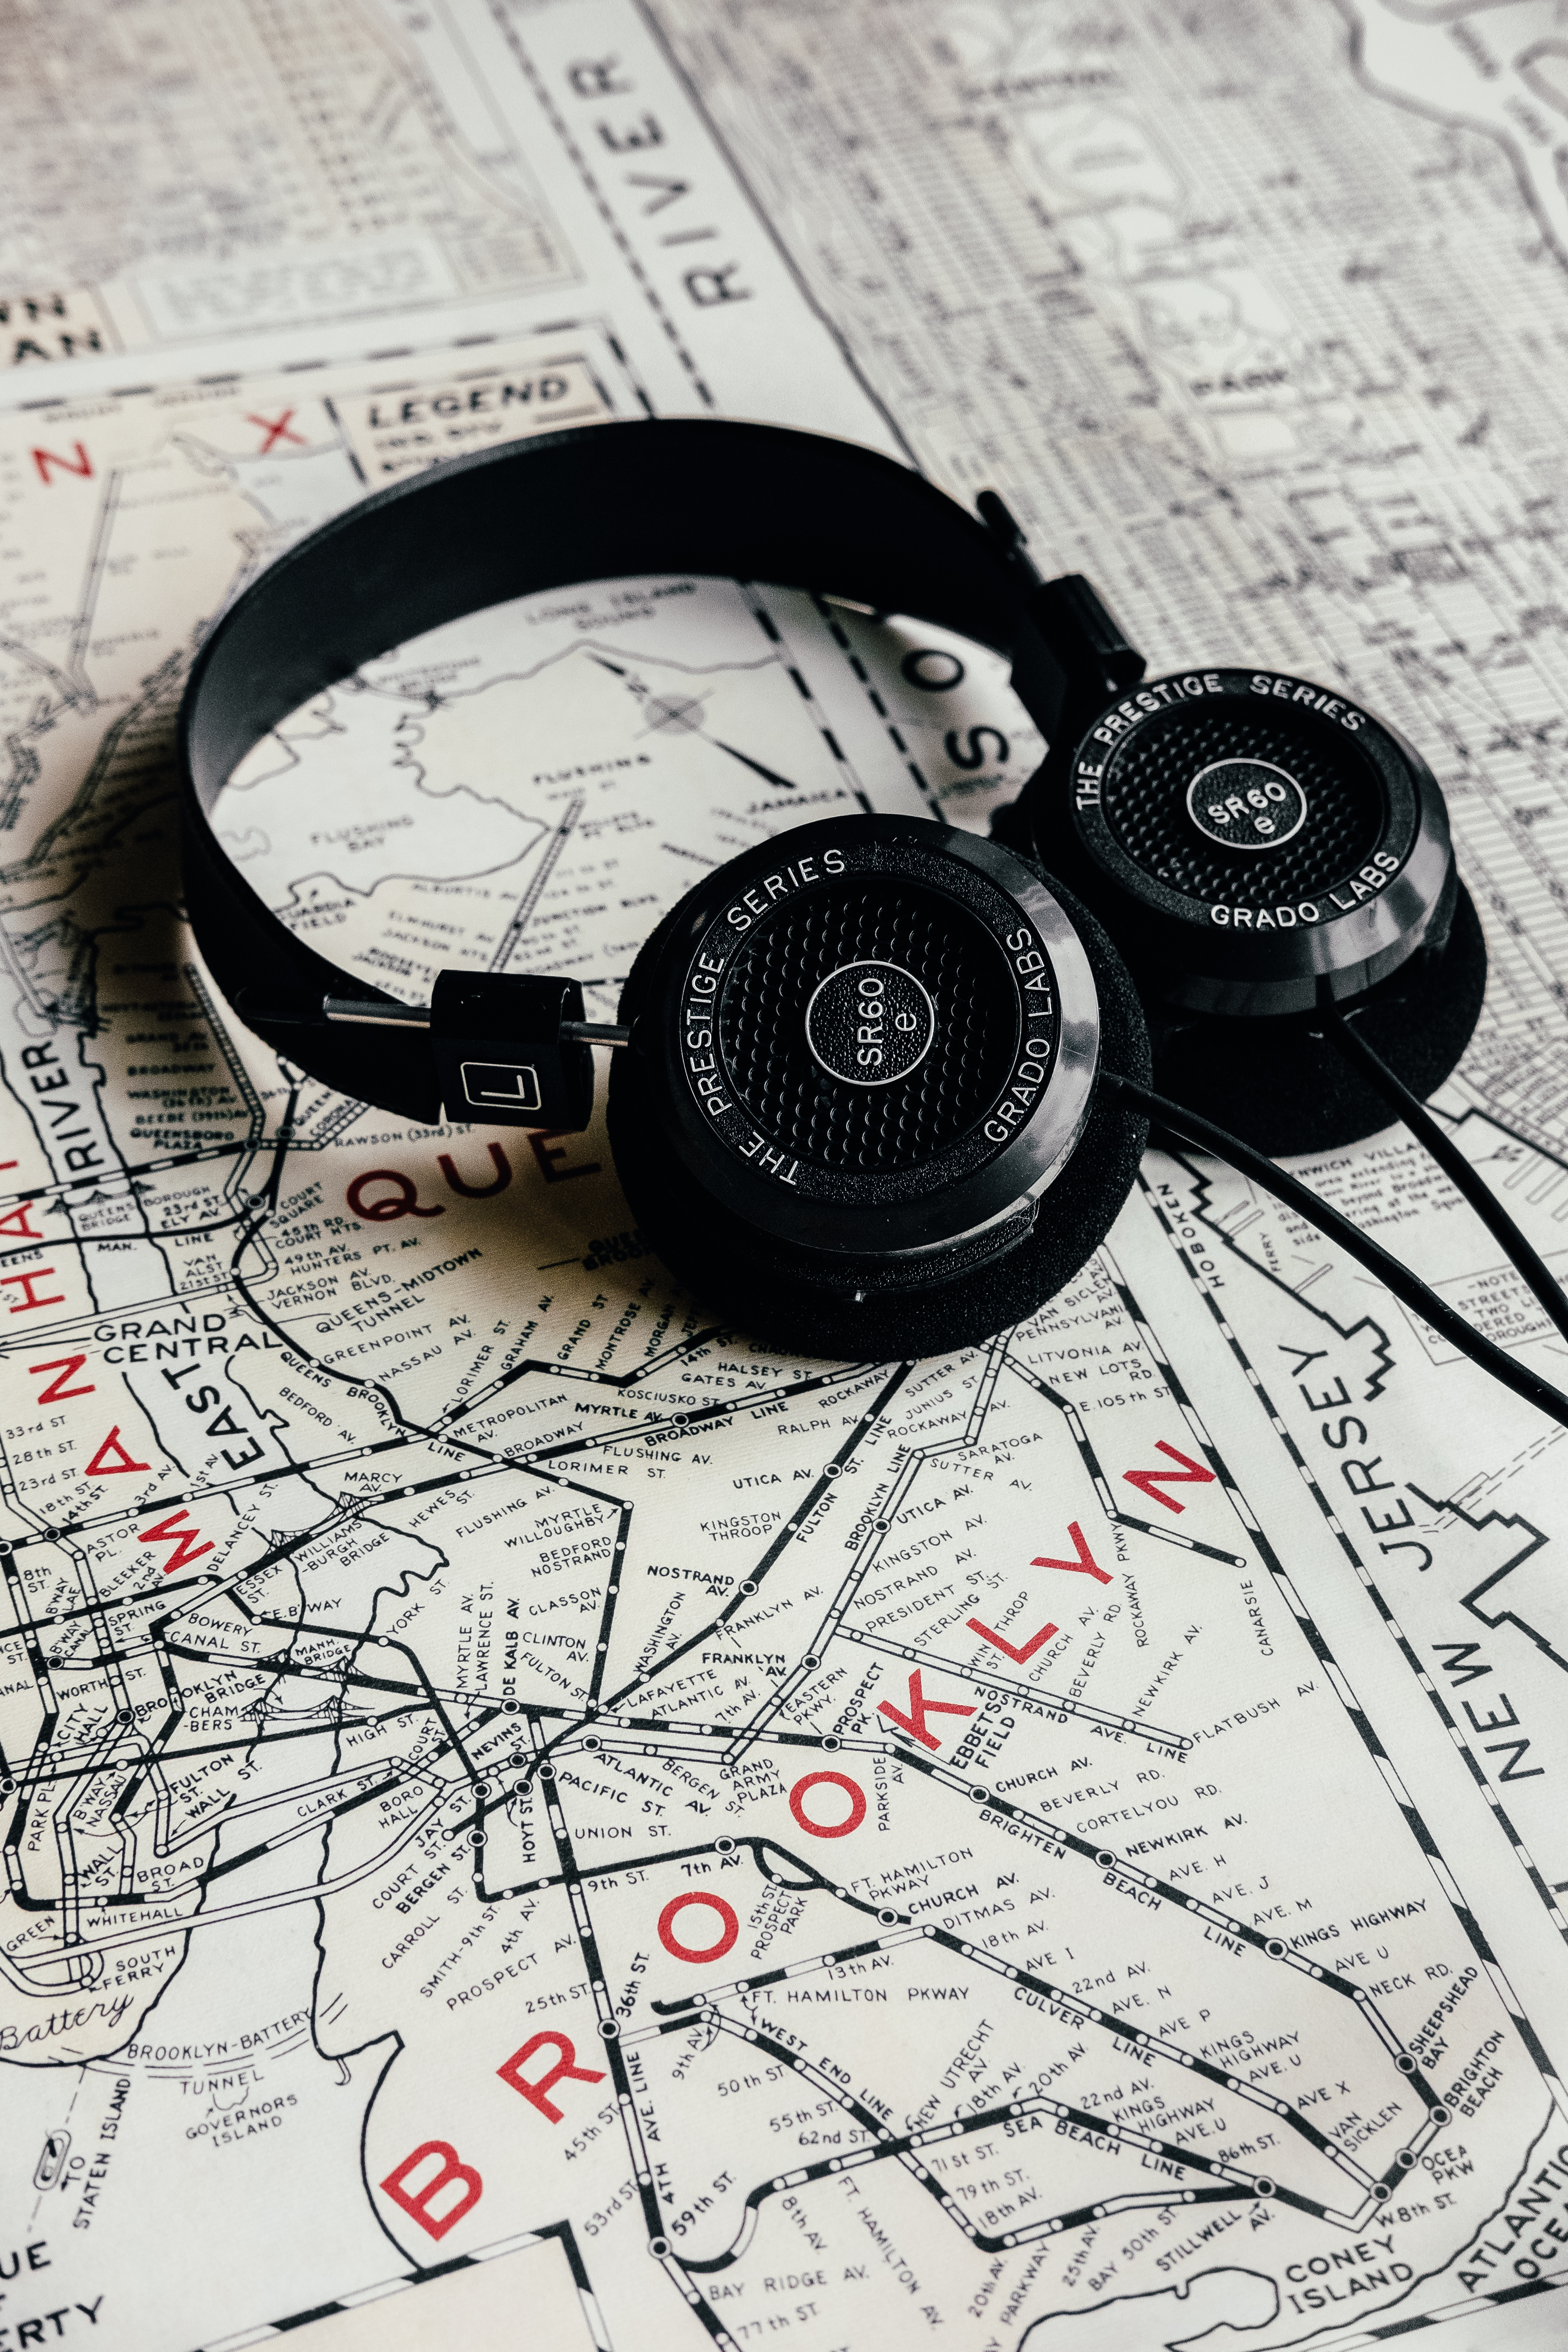 104125 download wallpaper Music, Headphones, Journey, Map, Audio screensavers and pictures for free